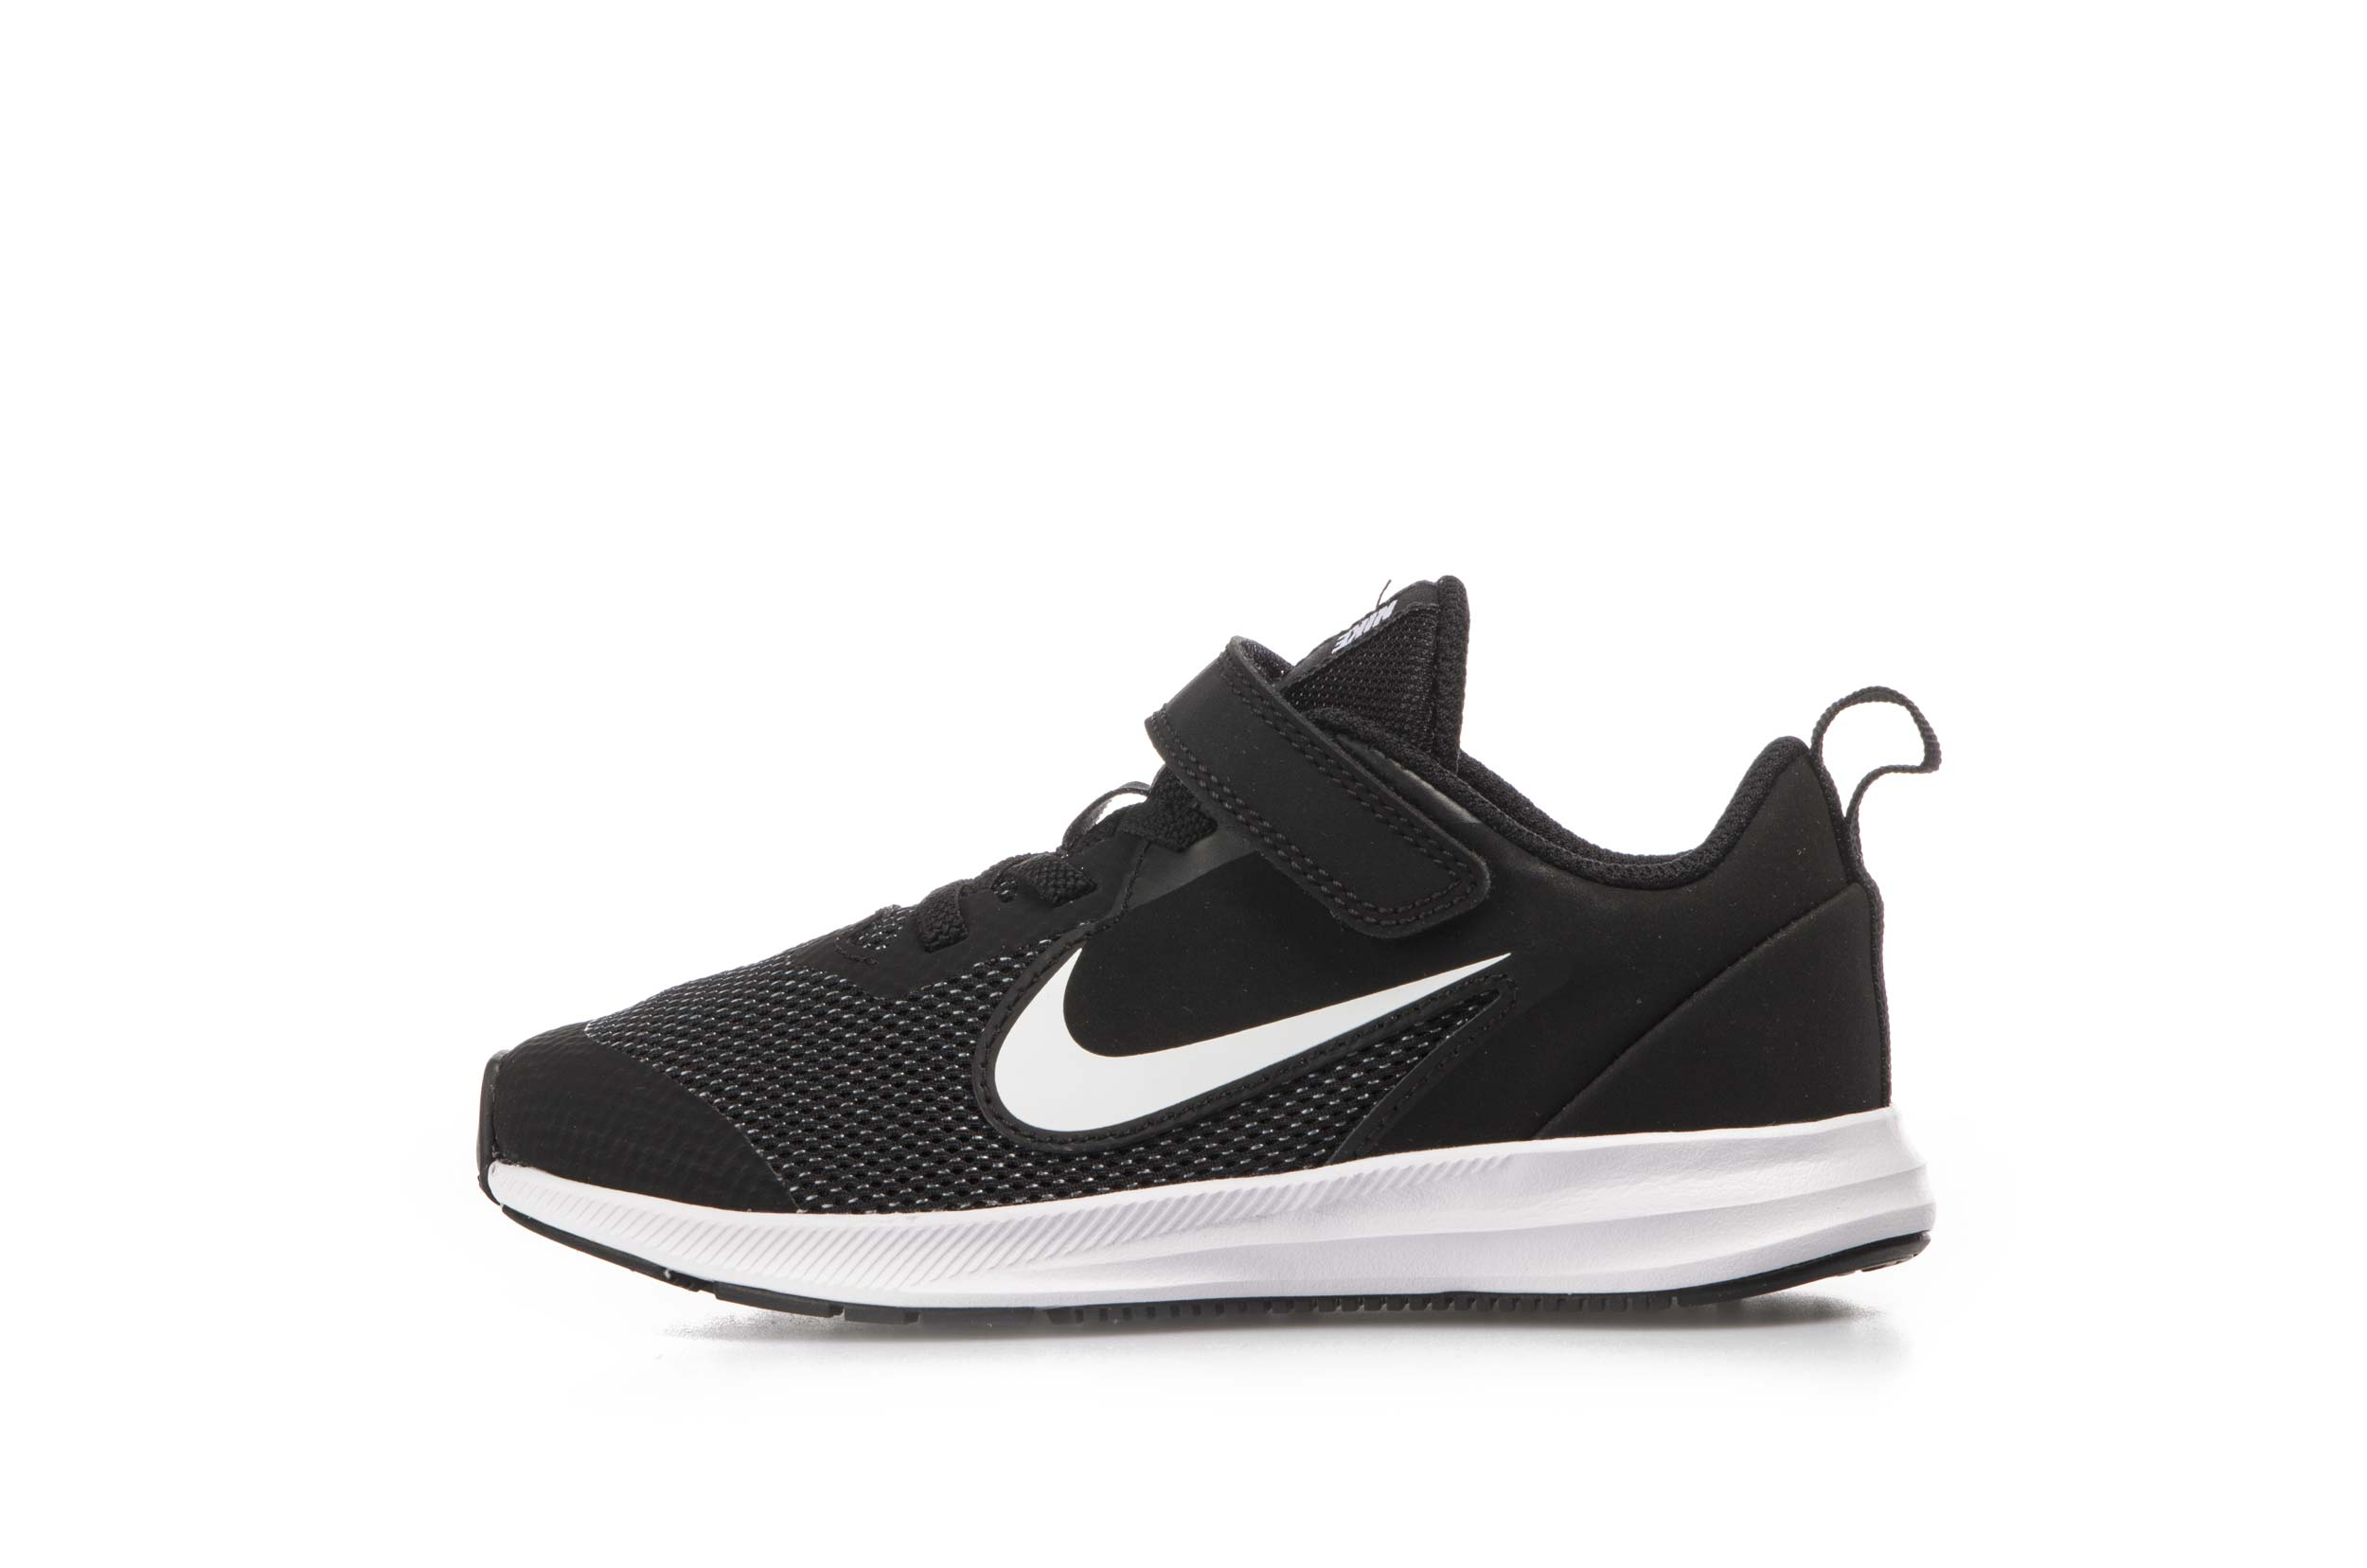 NIKE DOWNSHIFTER 9 PS AR4138-002 Μαύρο